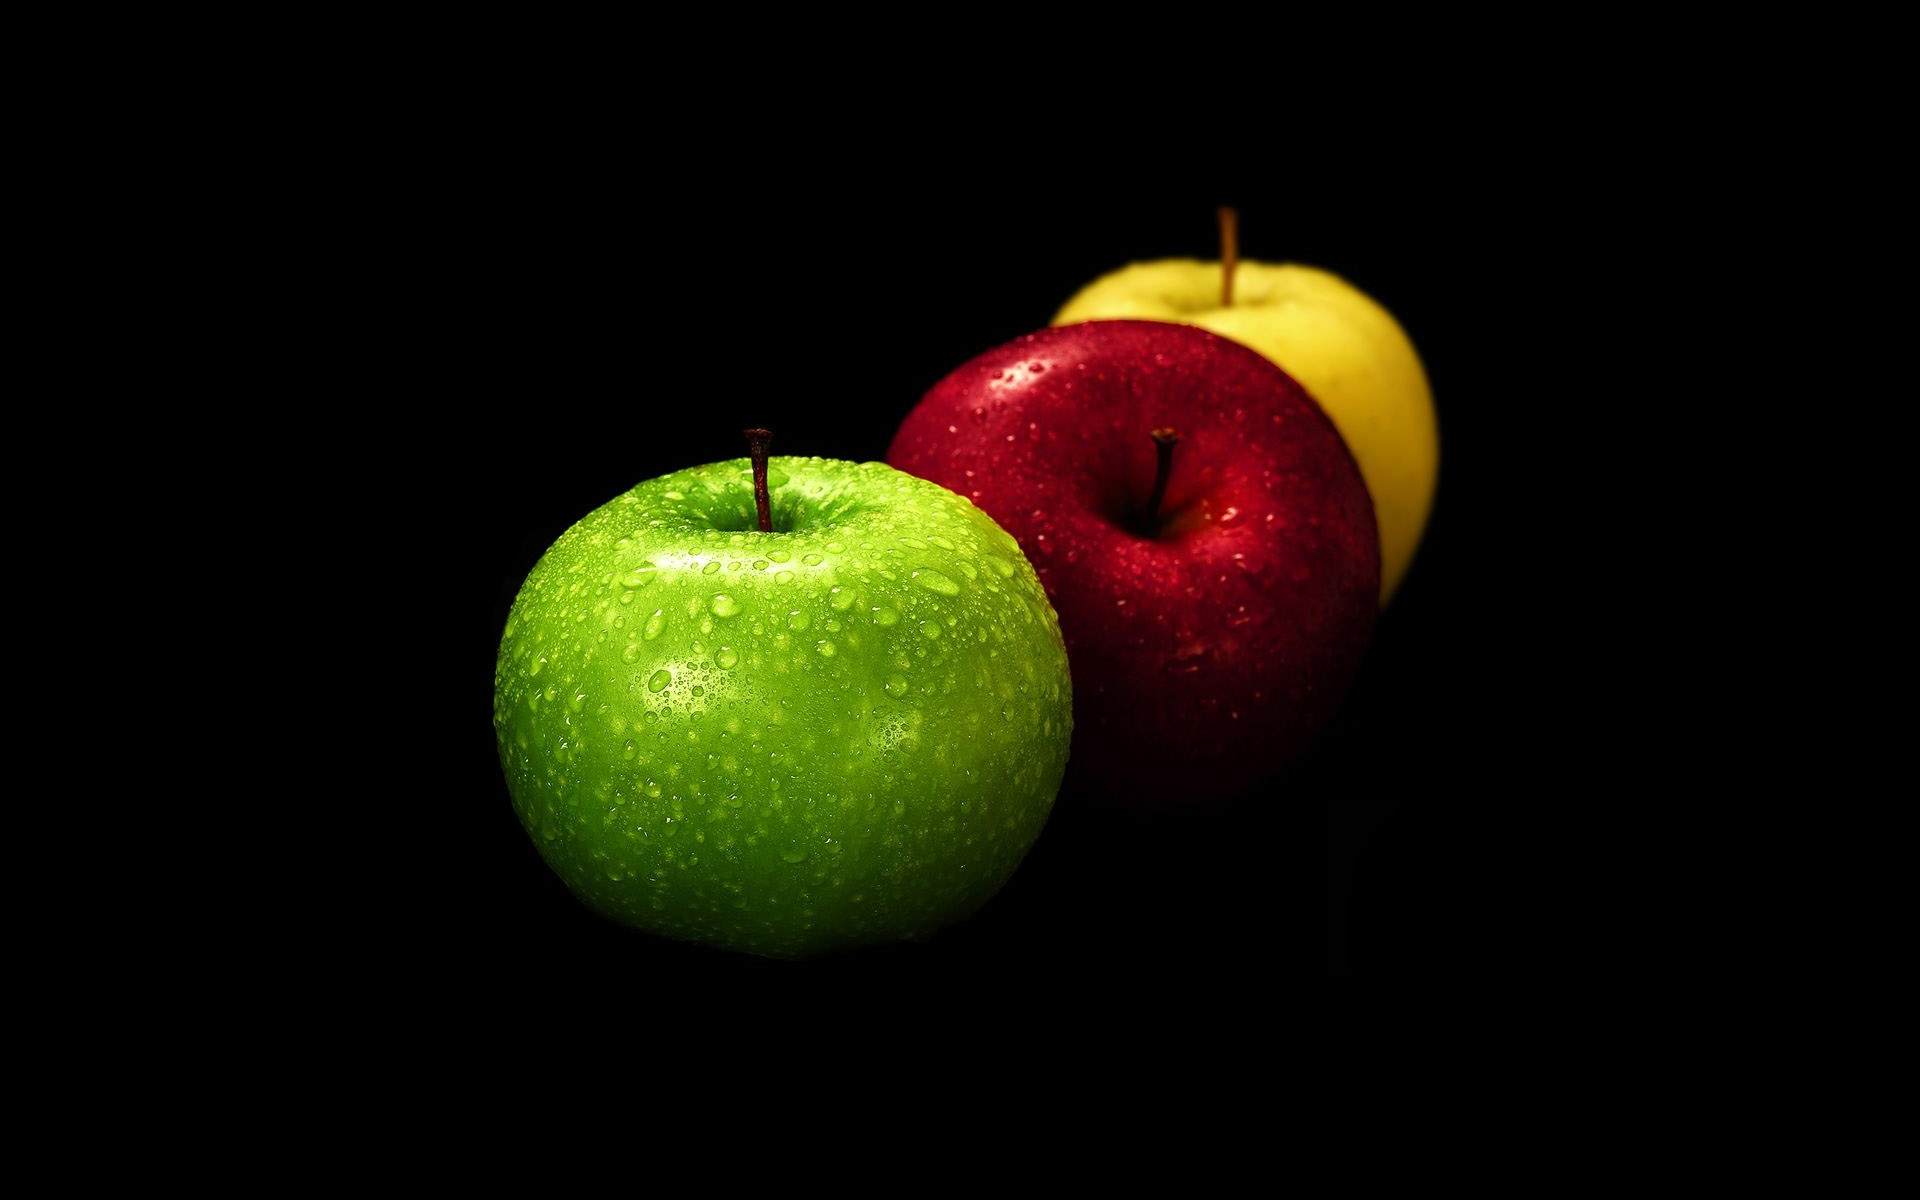 Perfect Red Yellow and Green Apple's 1920 x 1200 · 183 kB · jpeg